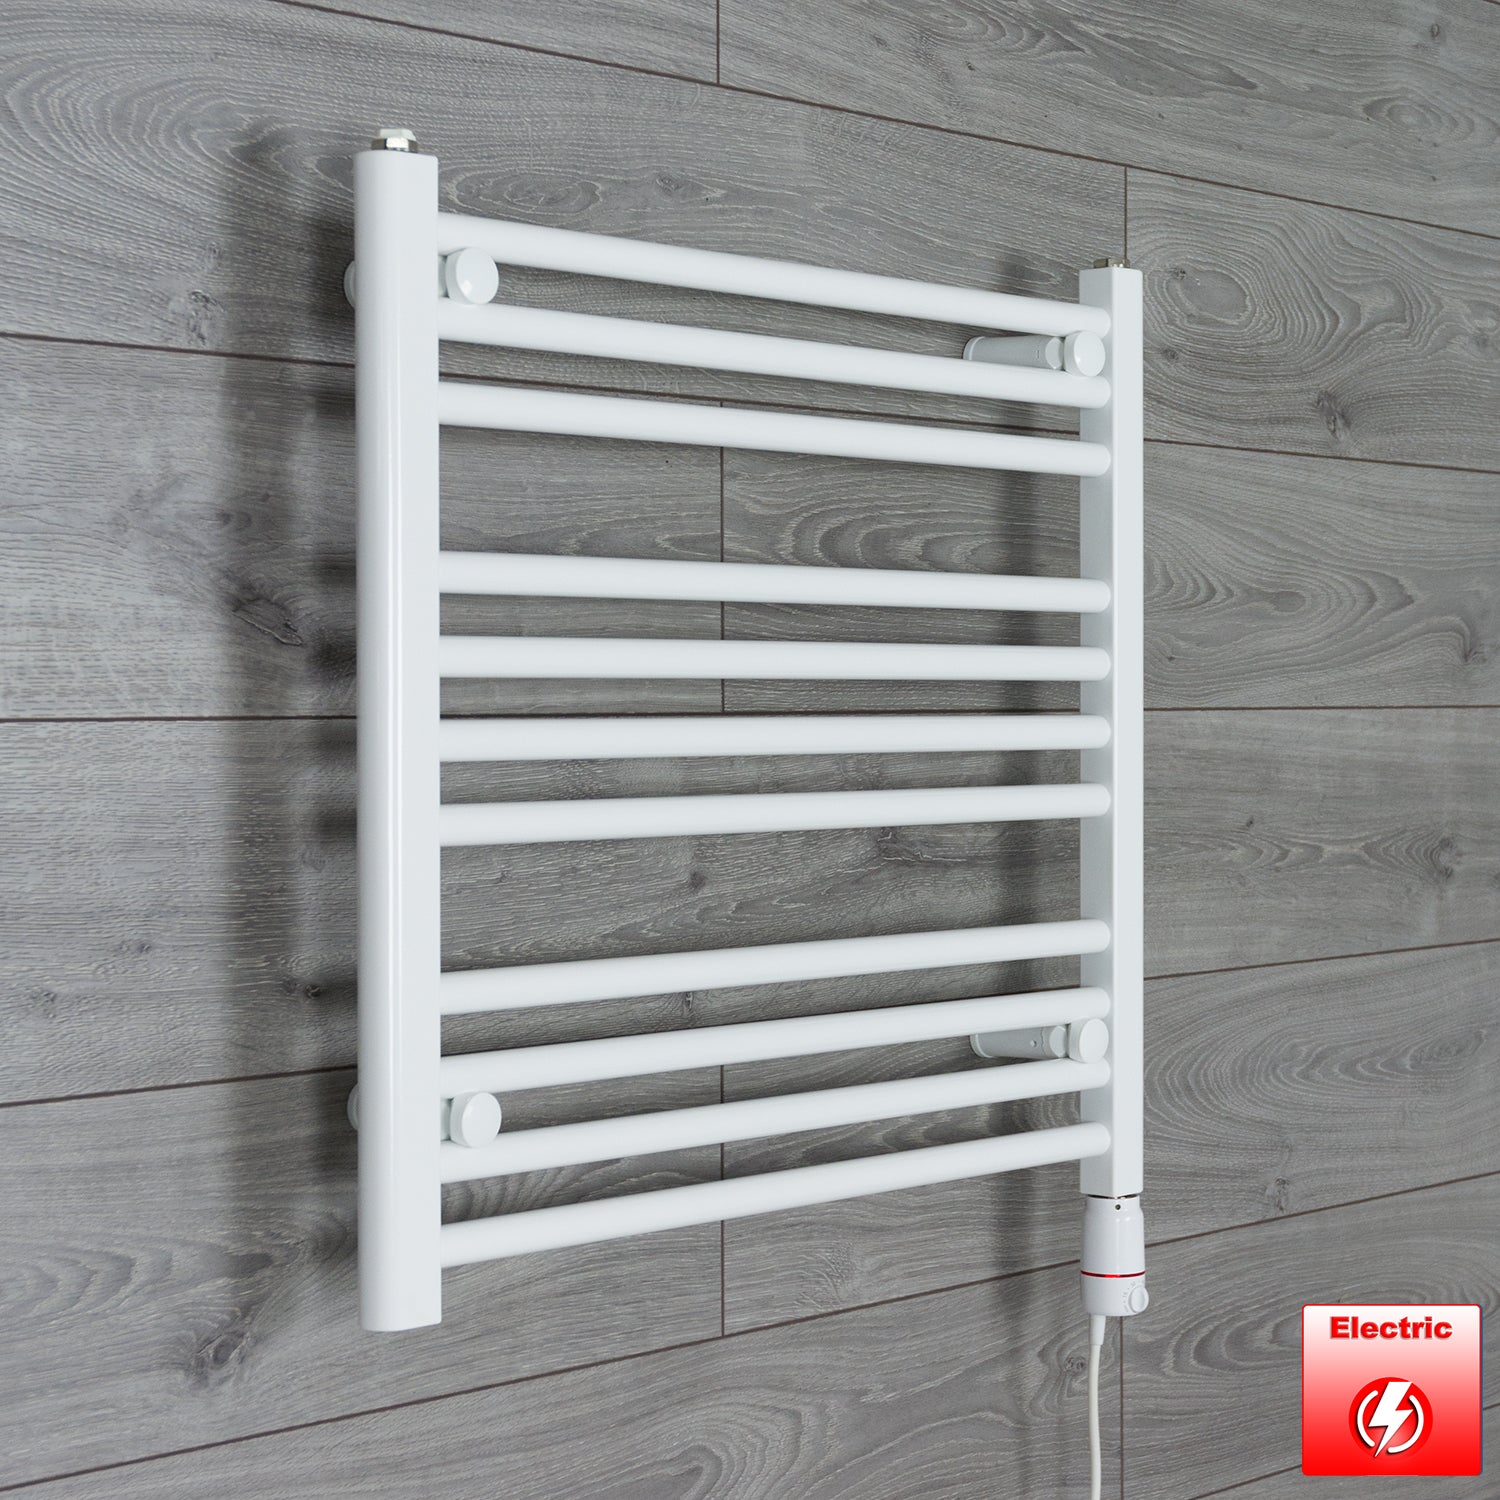 650mm Wide 600mm High Flat WHITE Pre-Filled Electric Heated Towel Rail Radiator HTR,GT Thermostatic